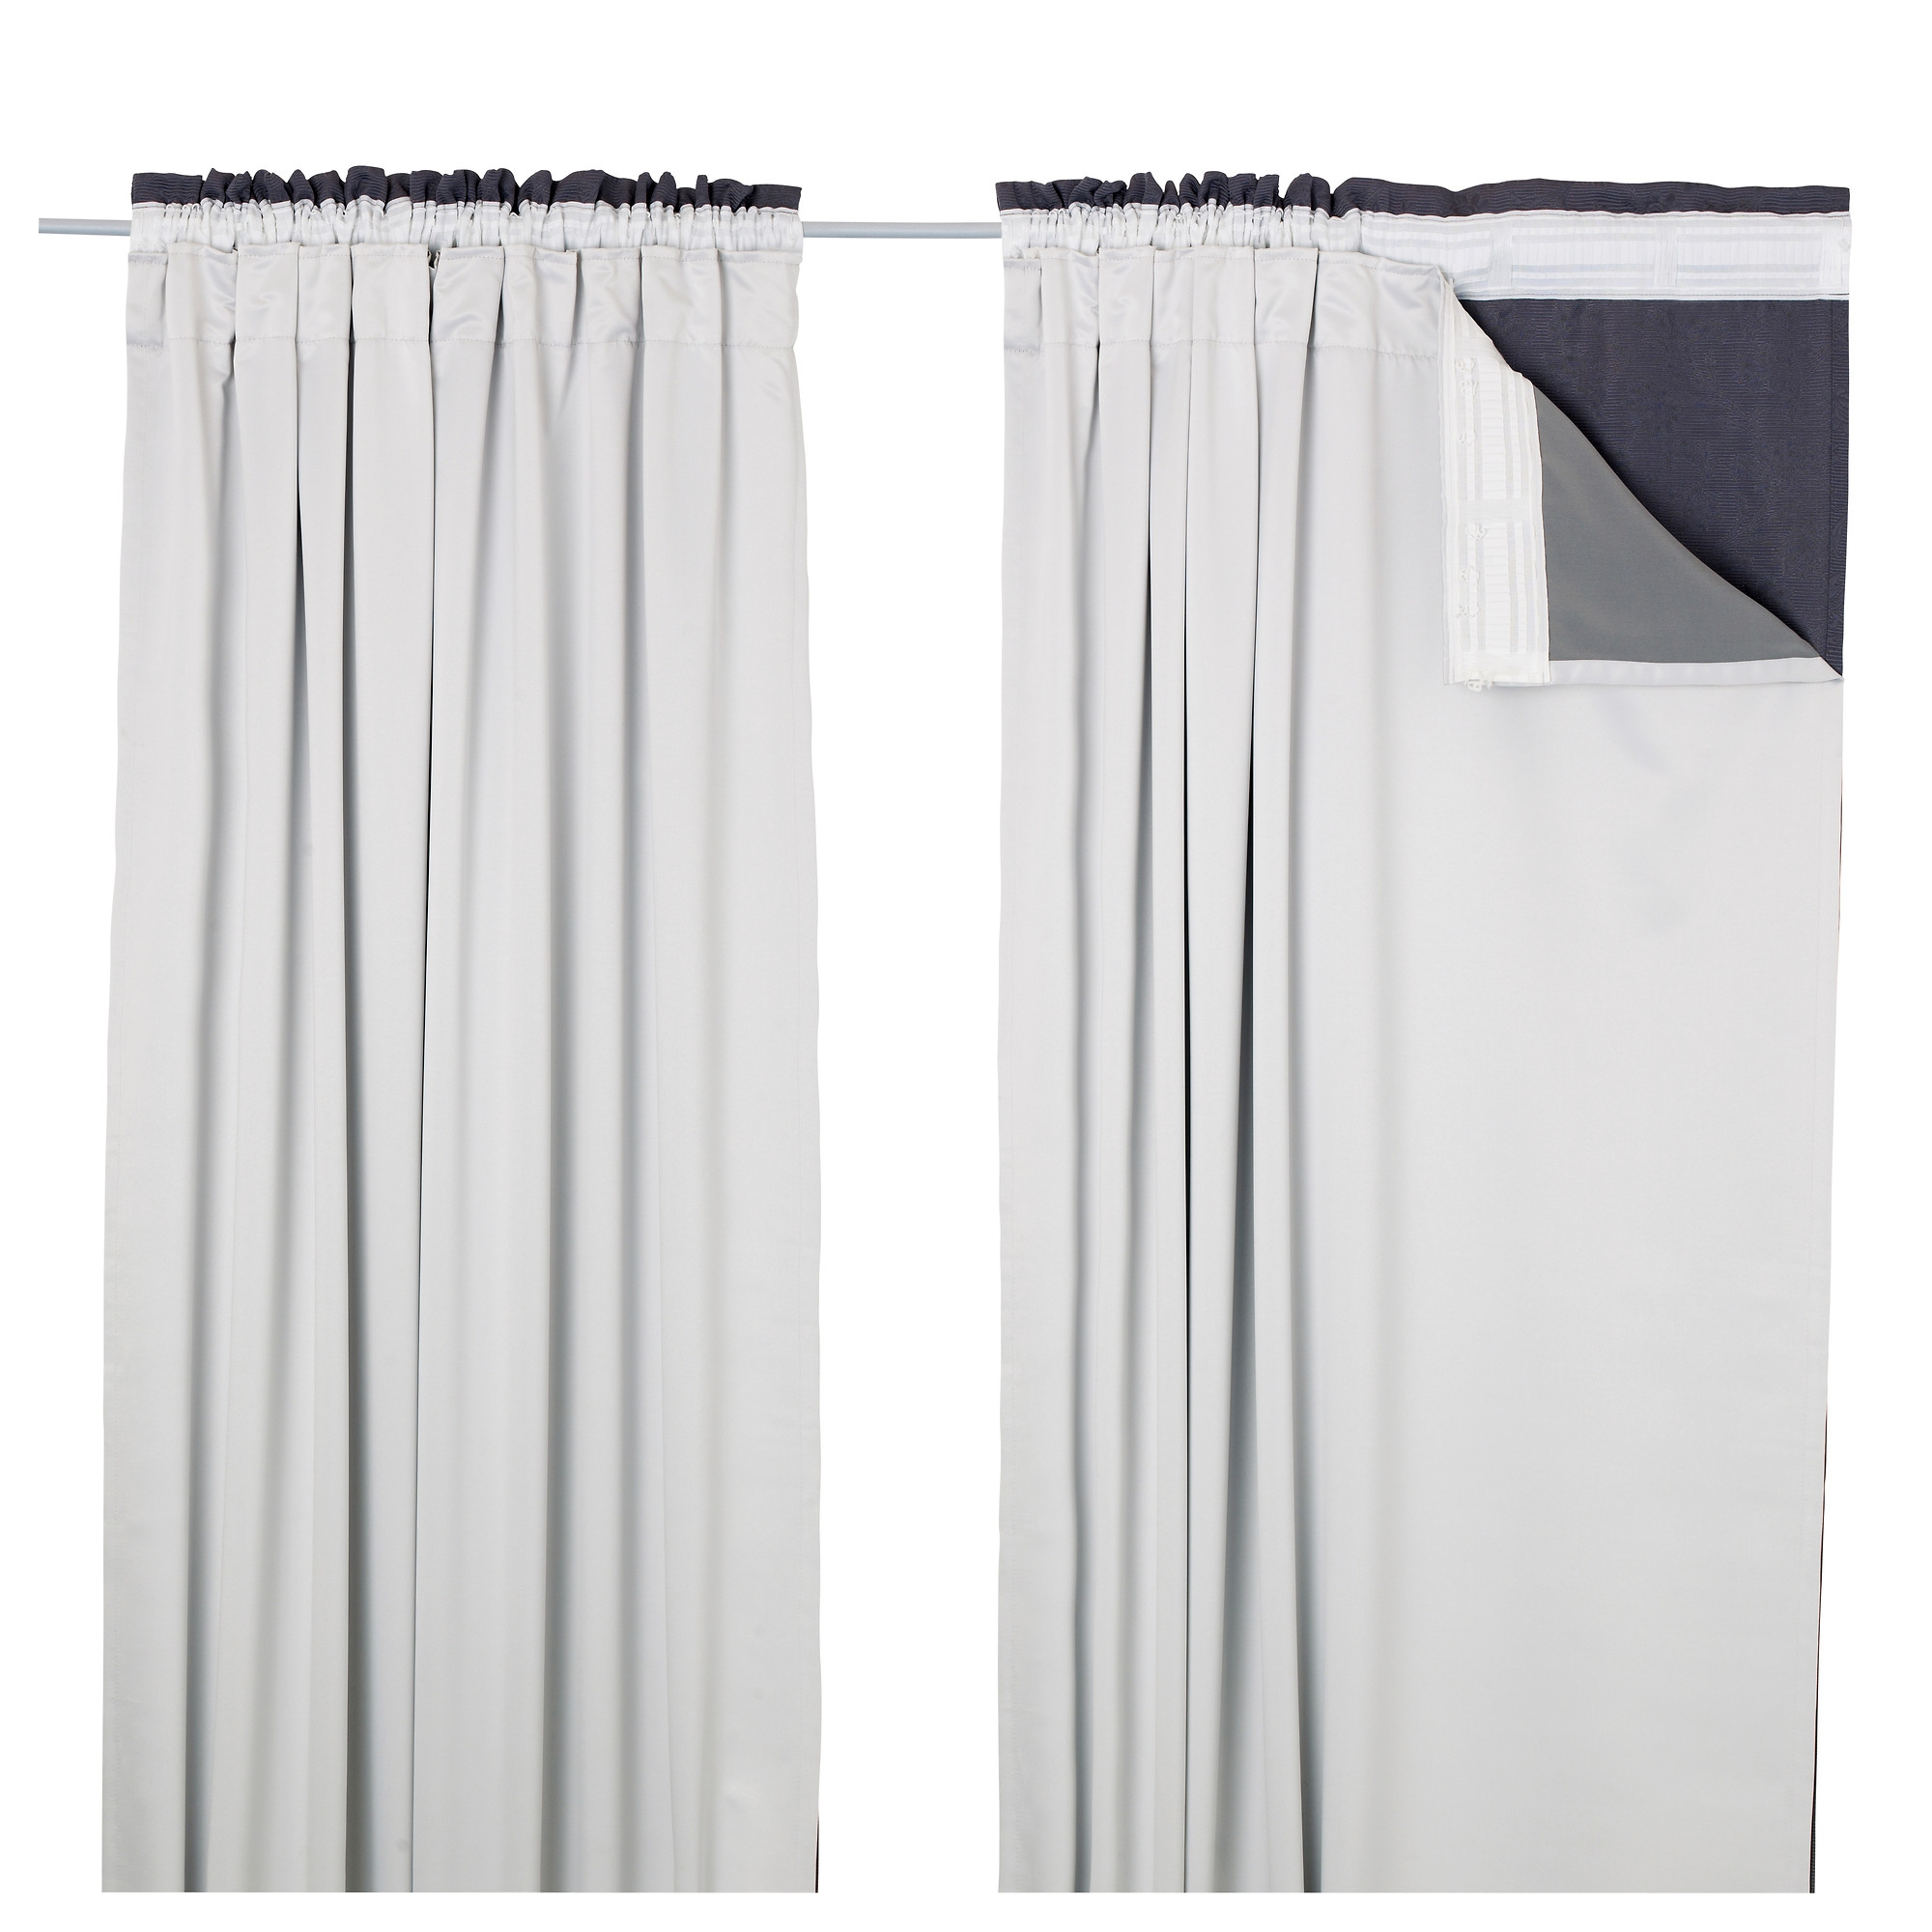 Glansnva Curtain Liners 1 Pair 56×94 Ikea Throughout Plain White Blackout Curtains (View 12 of 15)